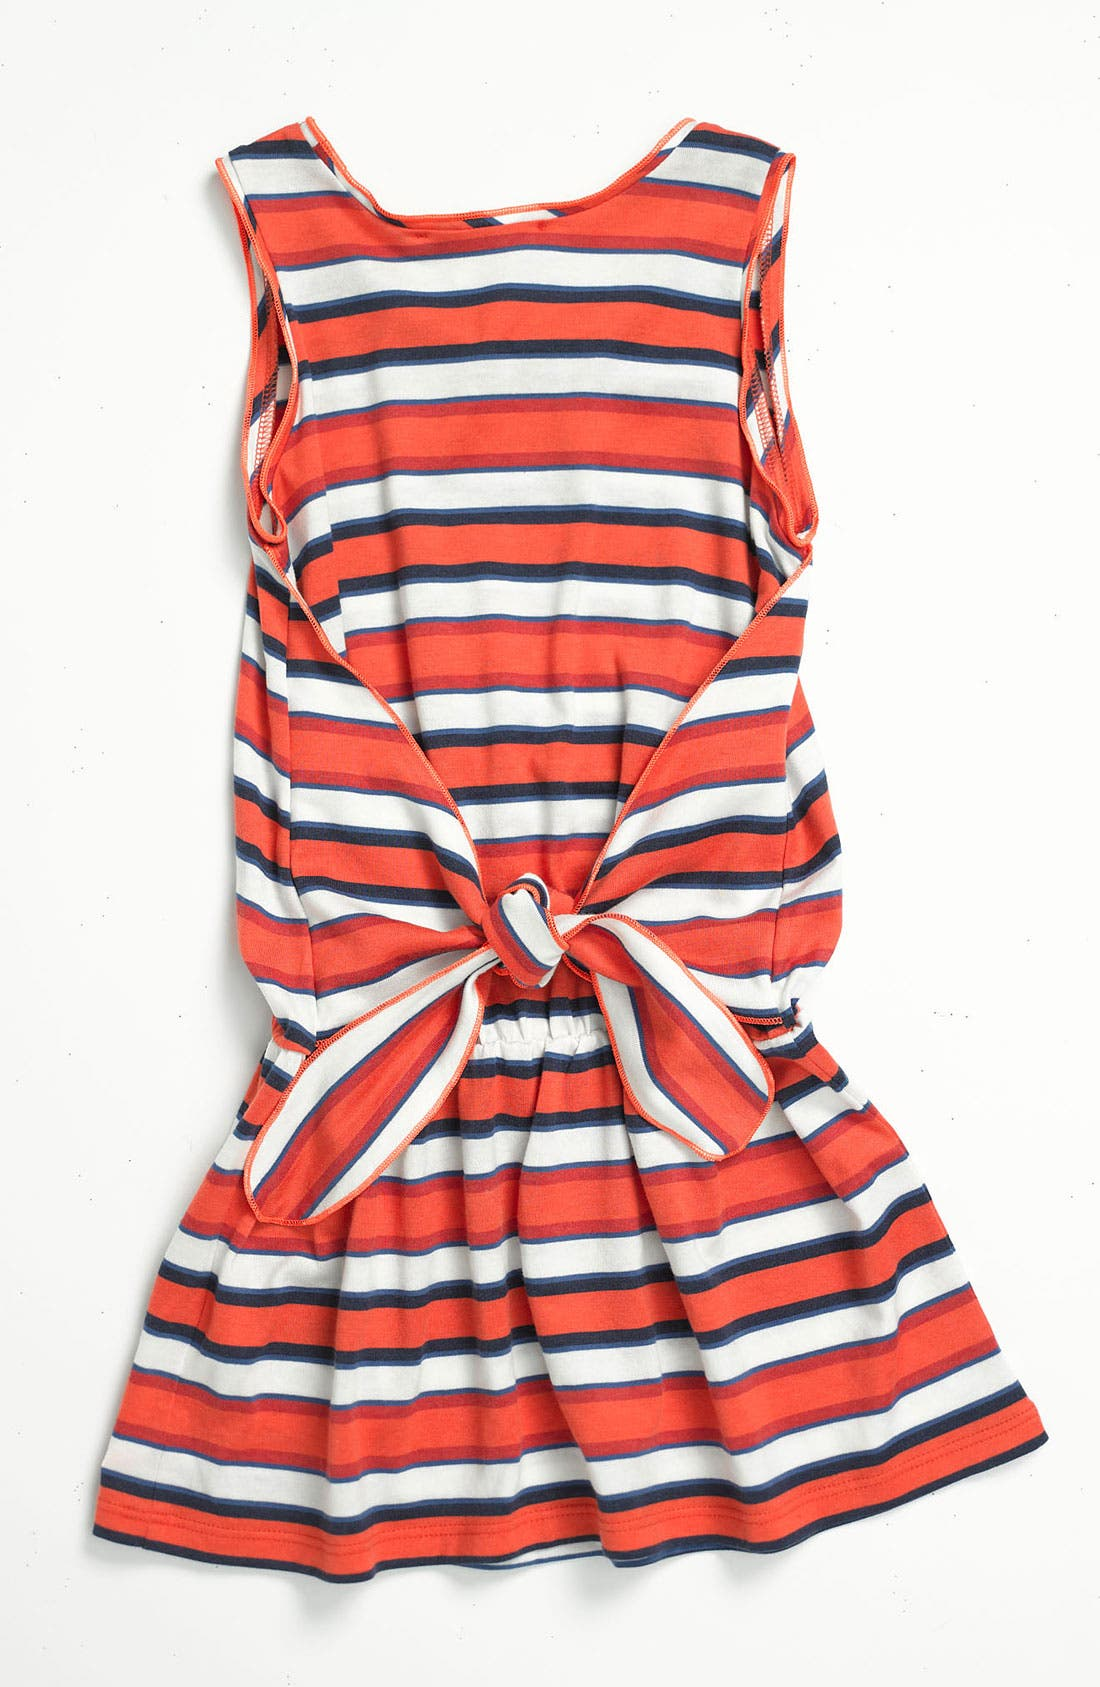 Main Image - LITTLE MARC JACOBS Sleeveless Dress (Little Girls & Big Girls)